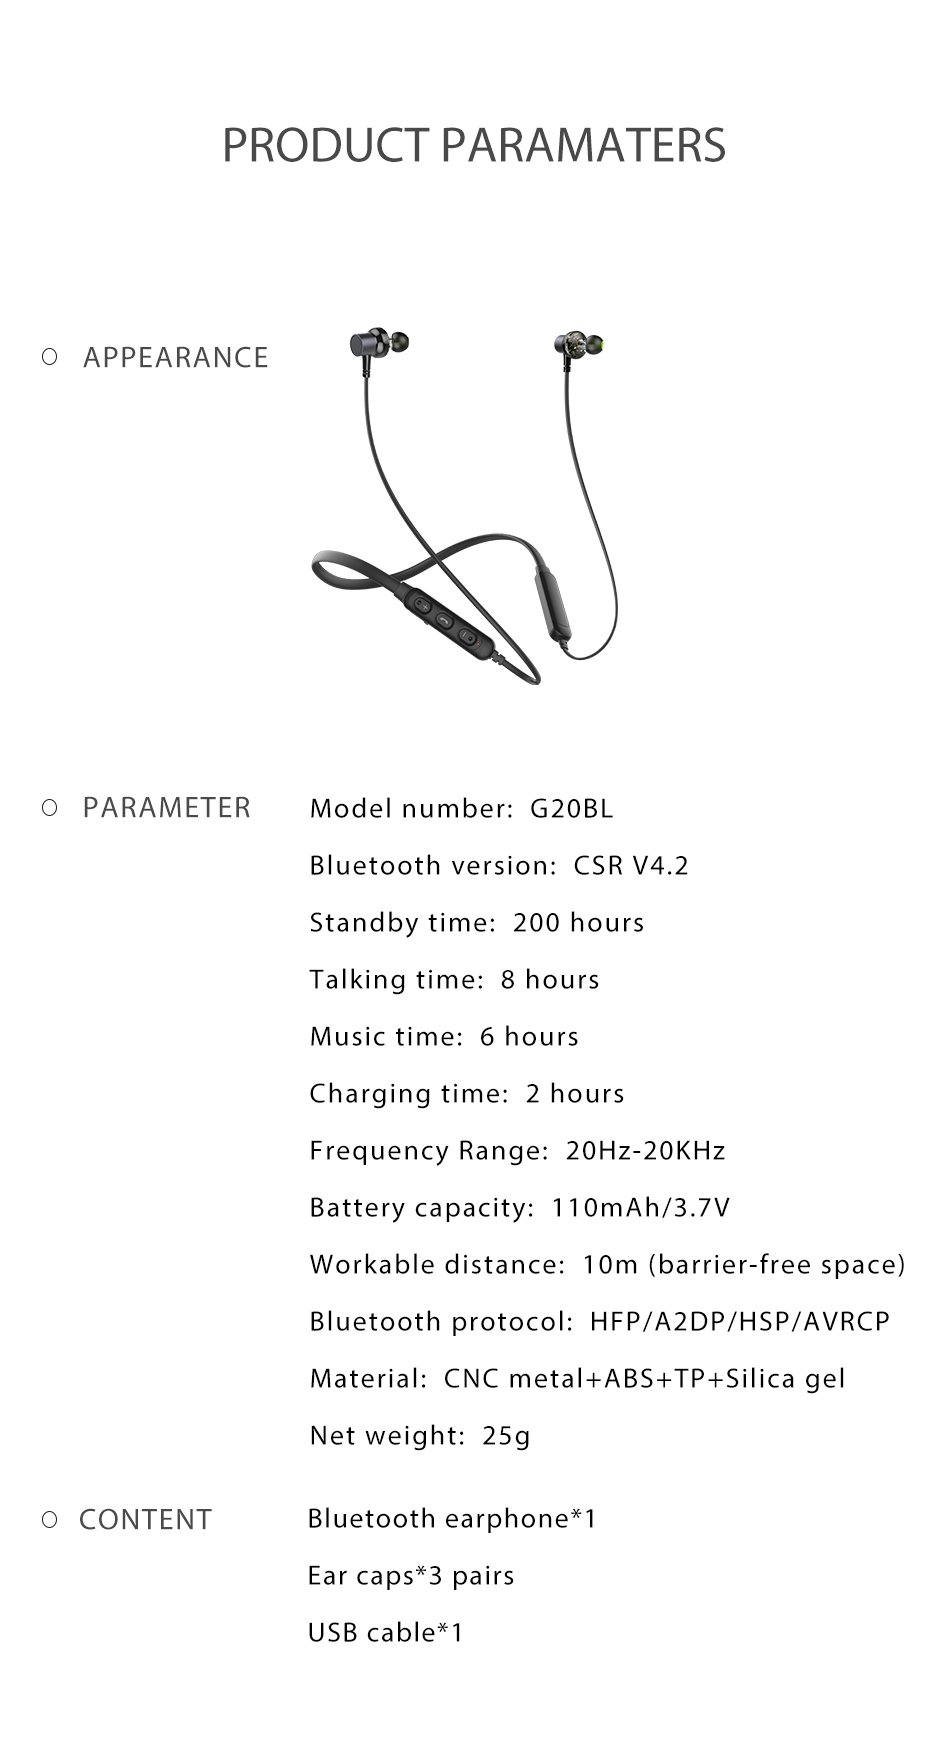 Awei G20BL bluetooth headset